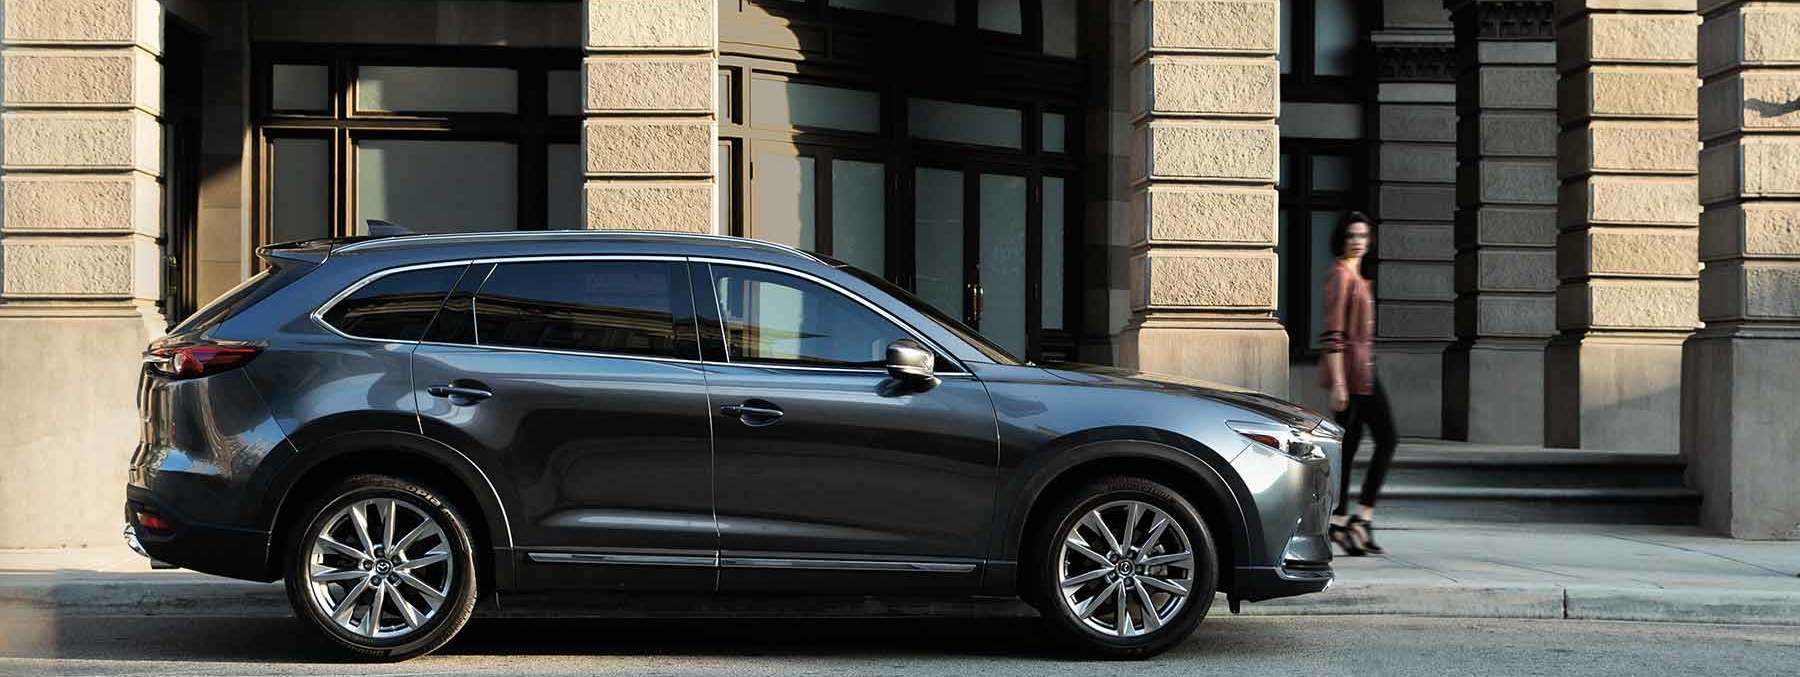 2019 Mazda CX-9 Financing near Anaheim, CA